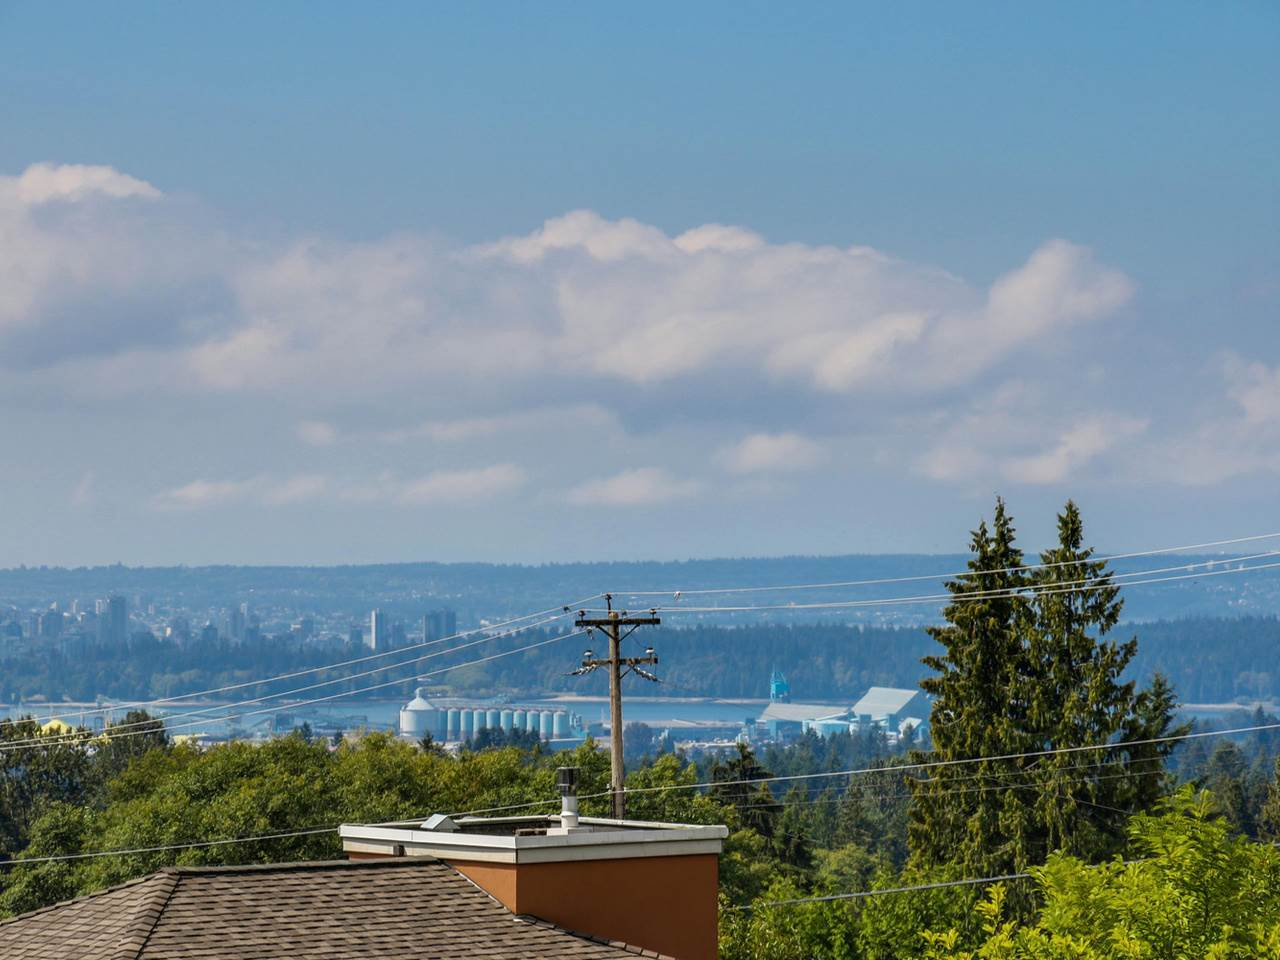 Main Photo: 3889 DALKEITH Drive in North Vancouver: Upper Lonsdale House for sale : MLS® # R2098321